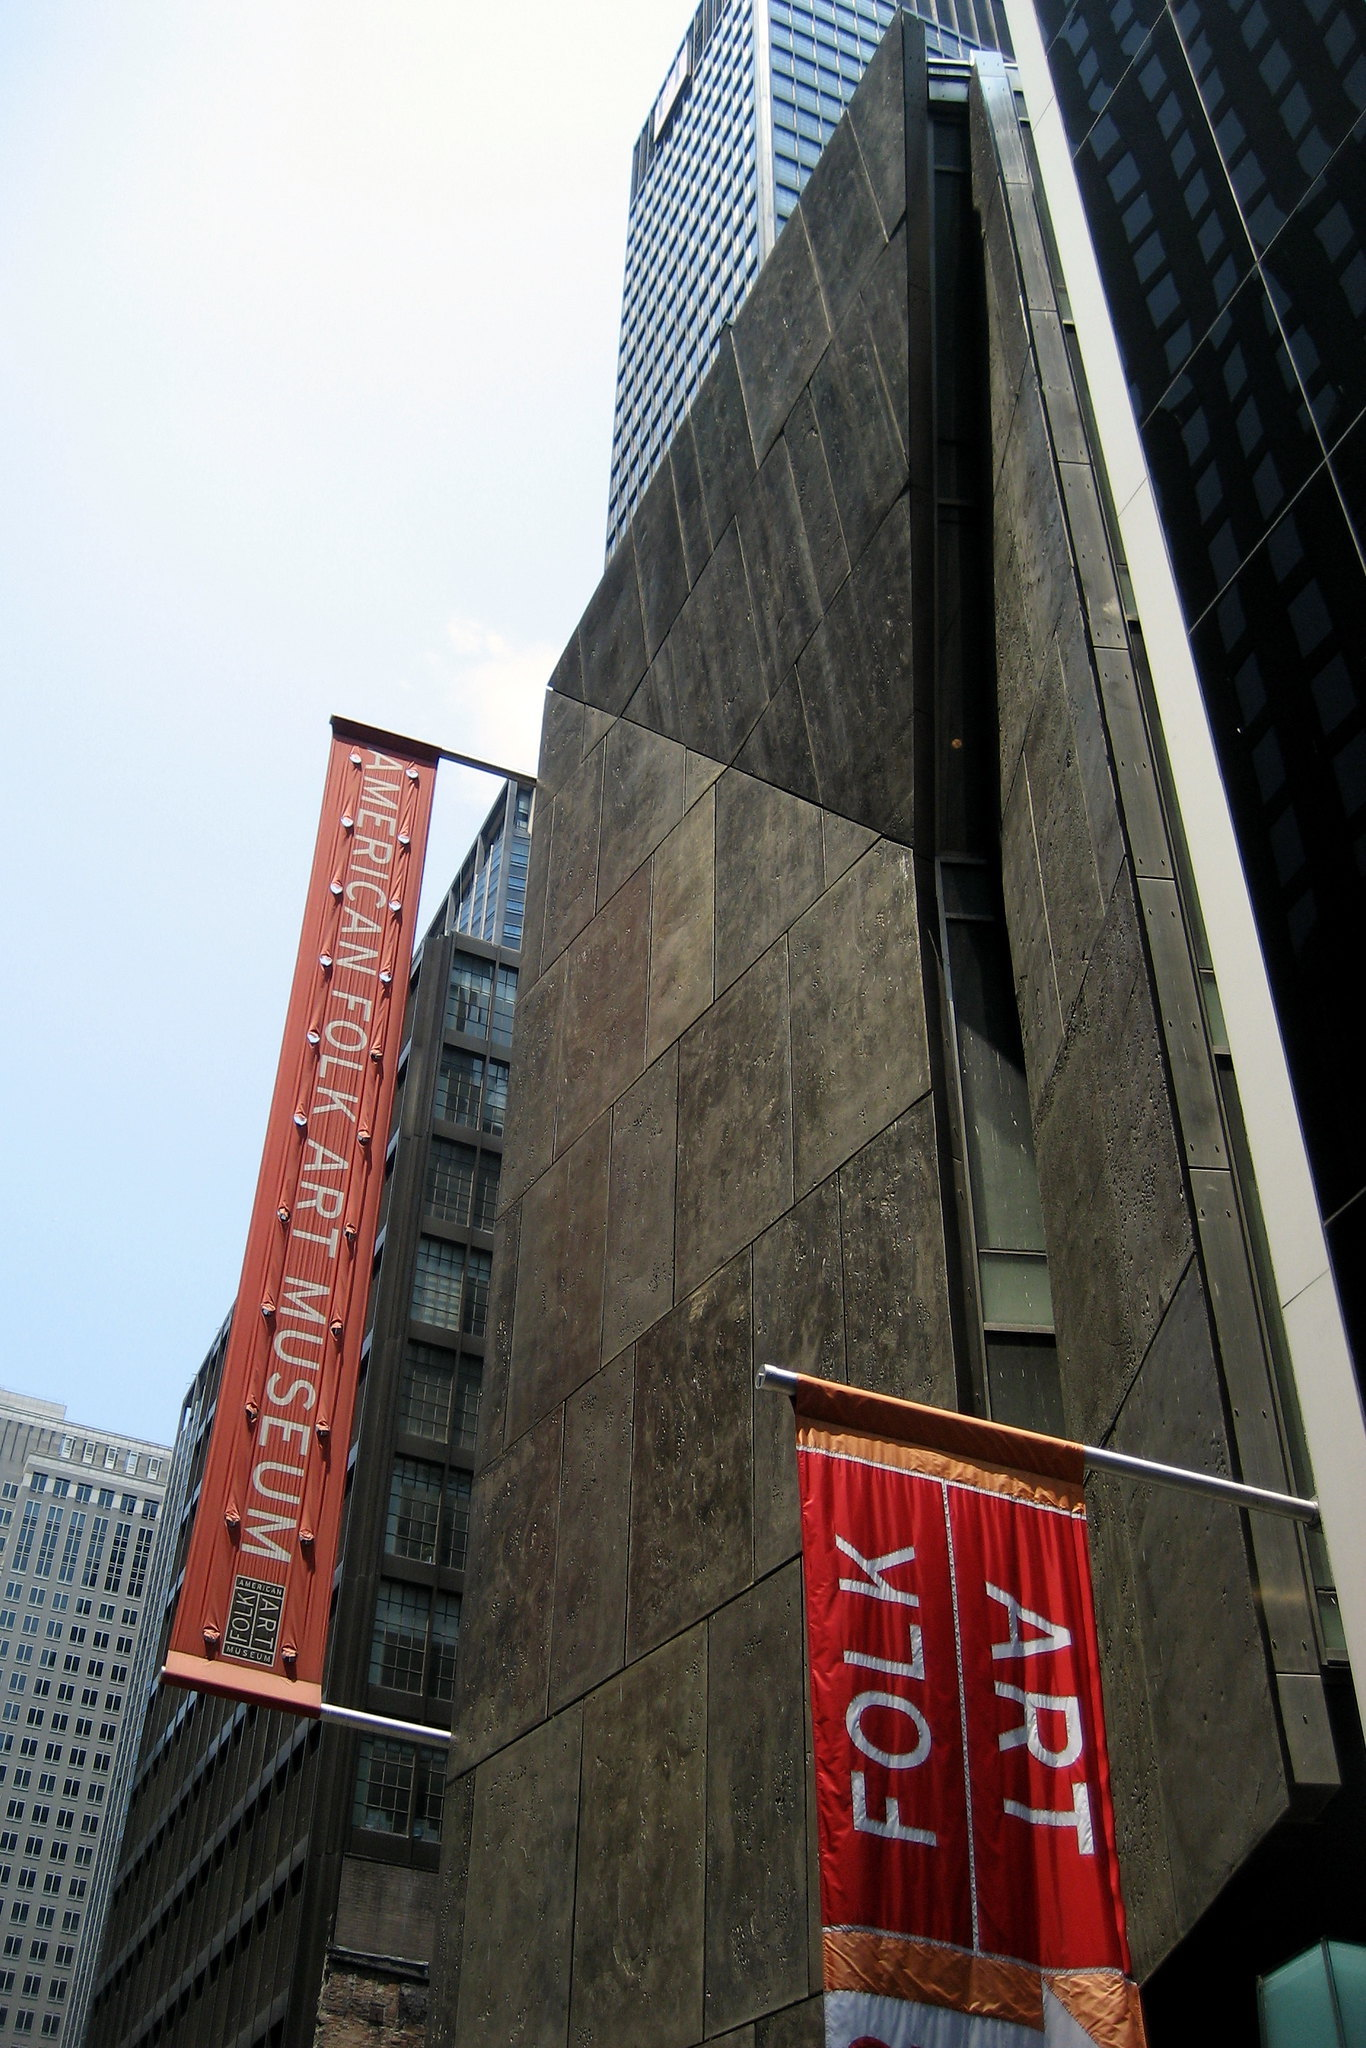 An exterior photograph of the American Folk Art Museum in New York, which houses Darger's work/